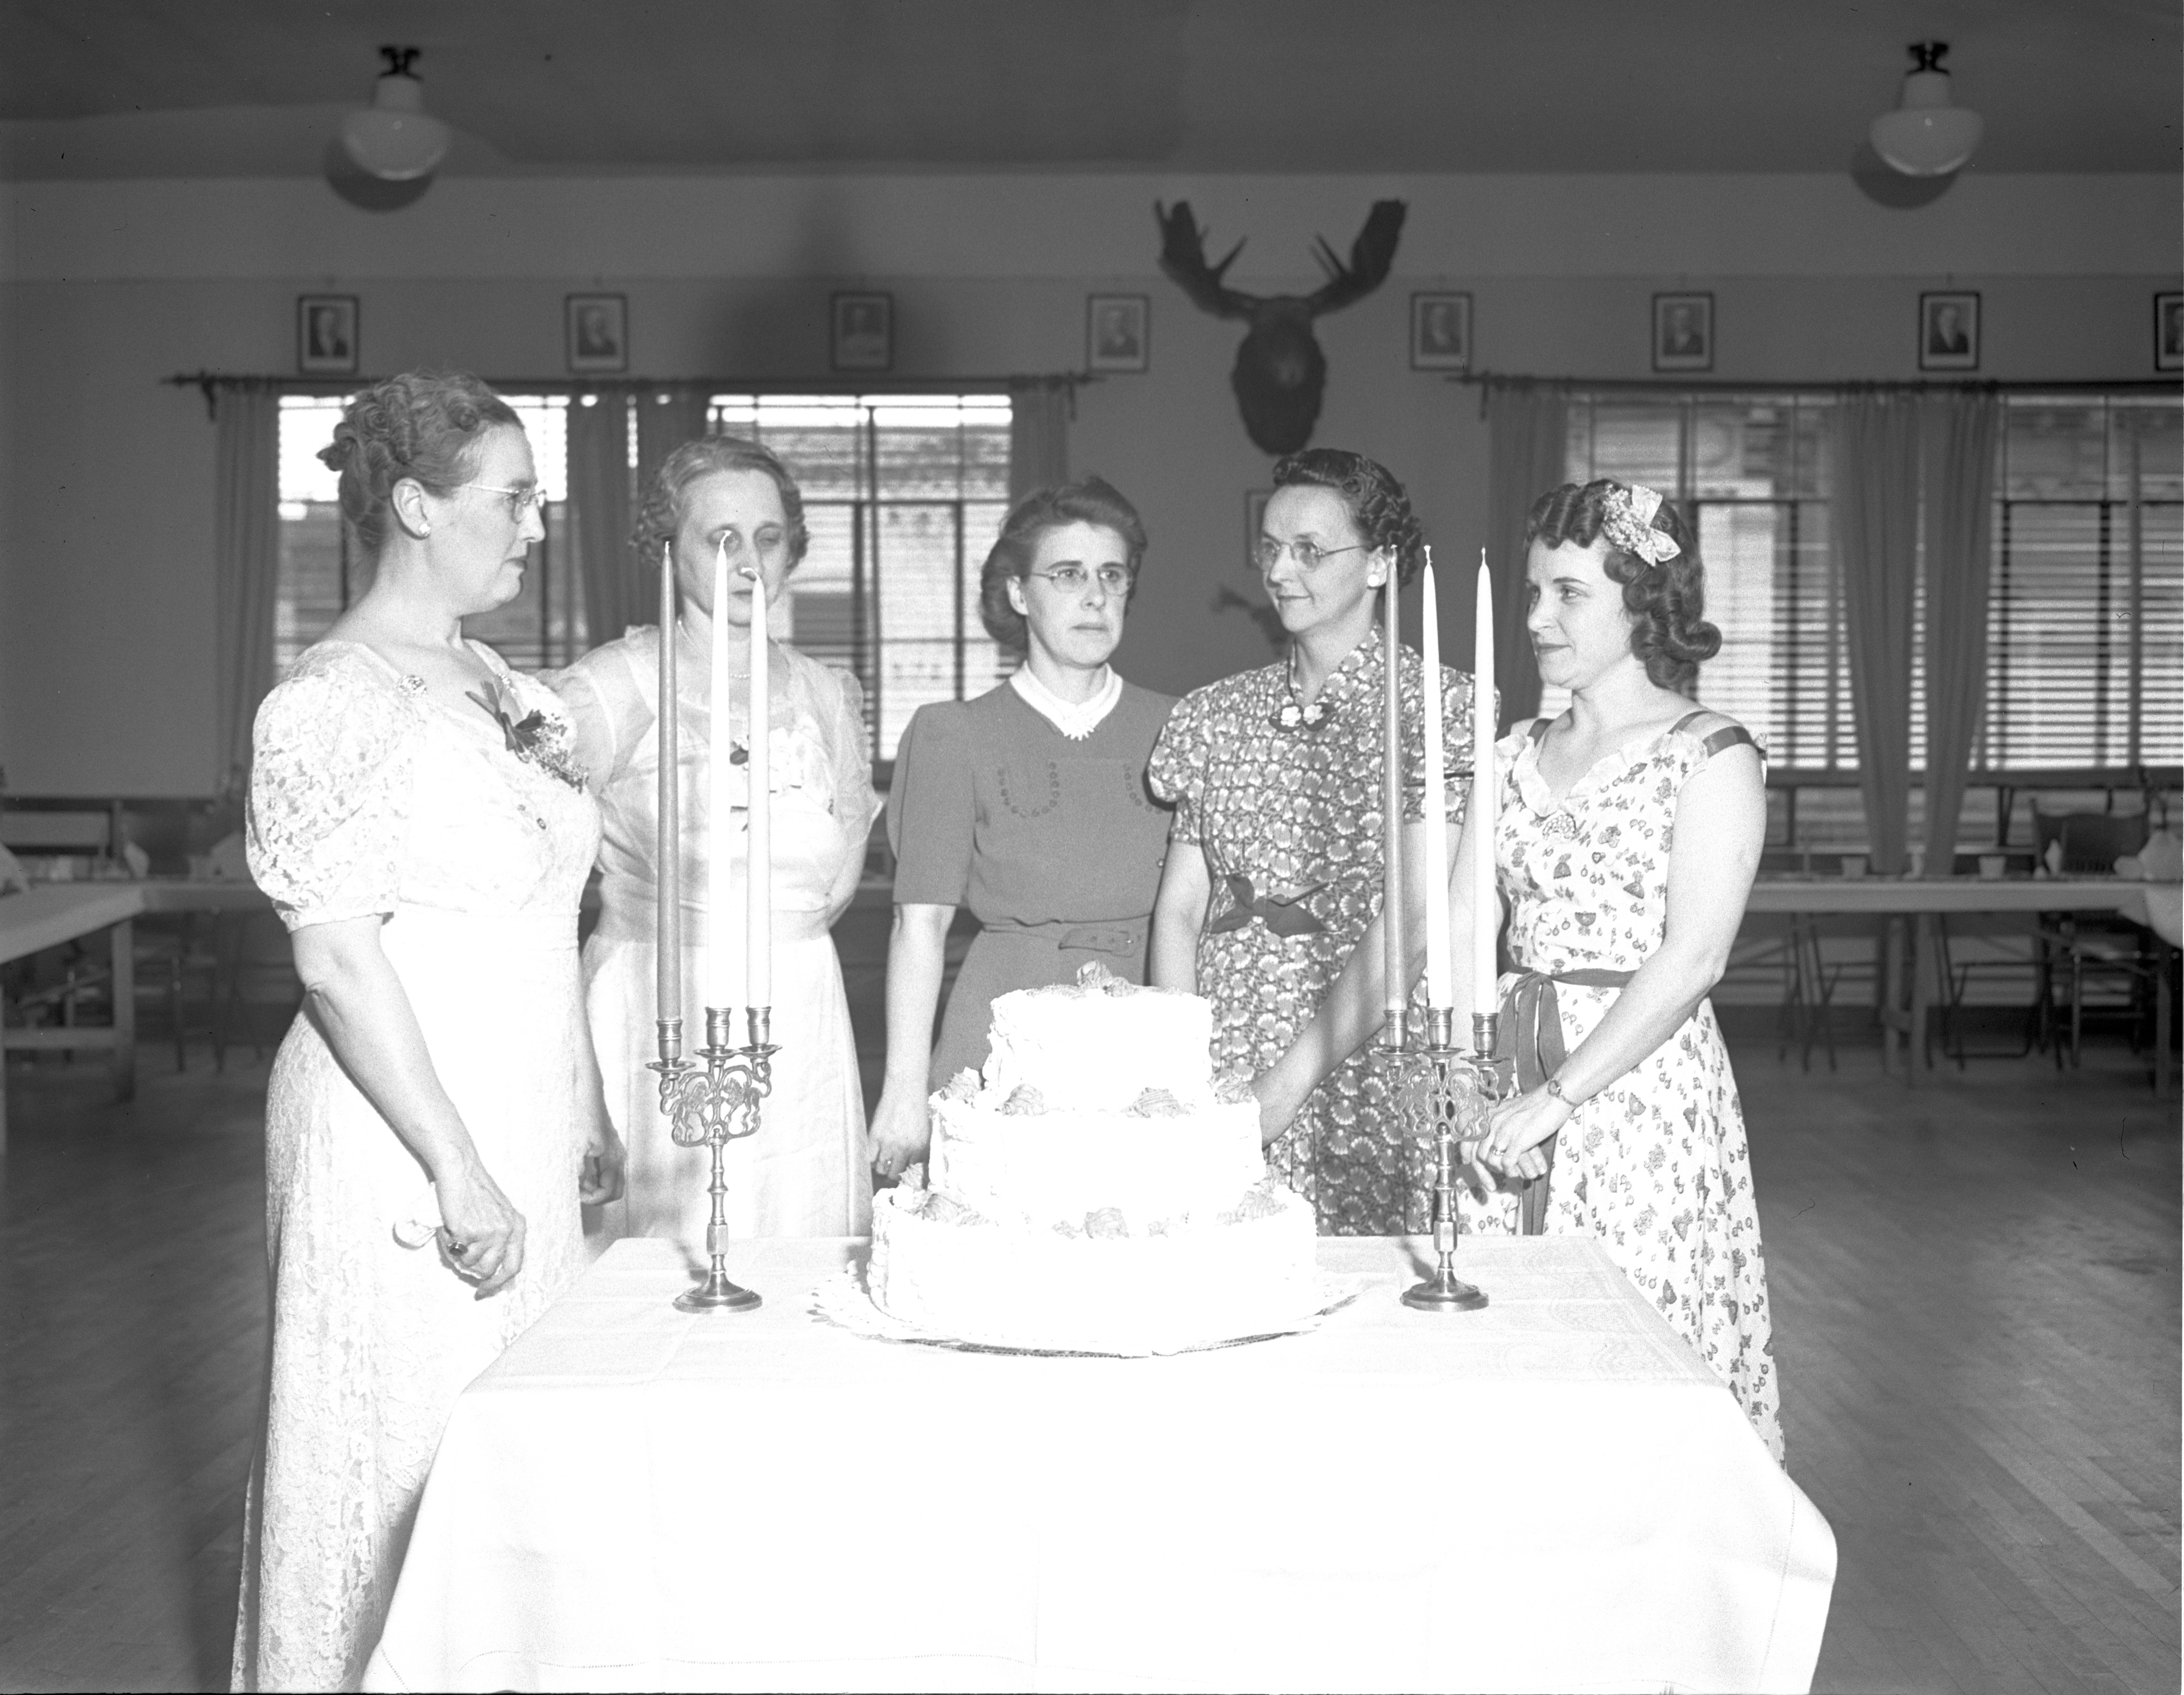 Women Of The Moose Celebrate The 10th Anniversary Of Their Ann Arbor Group, May 1940 image